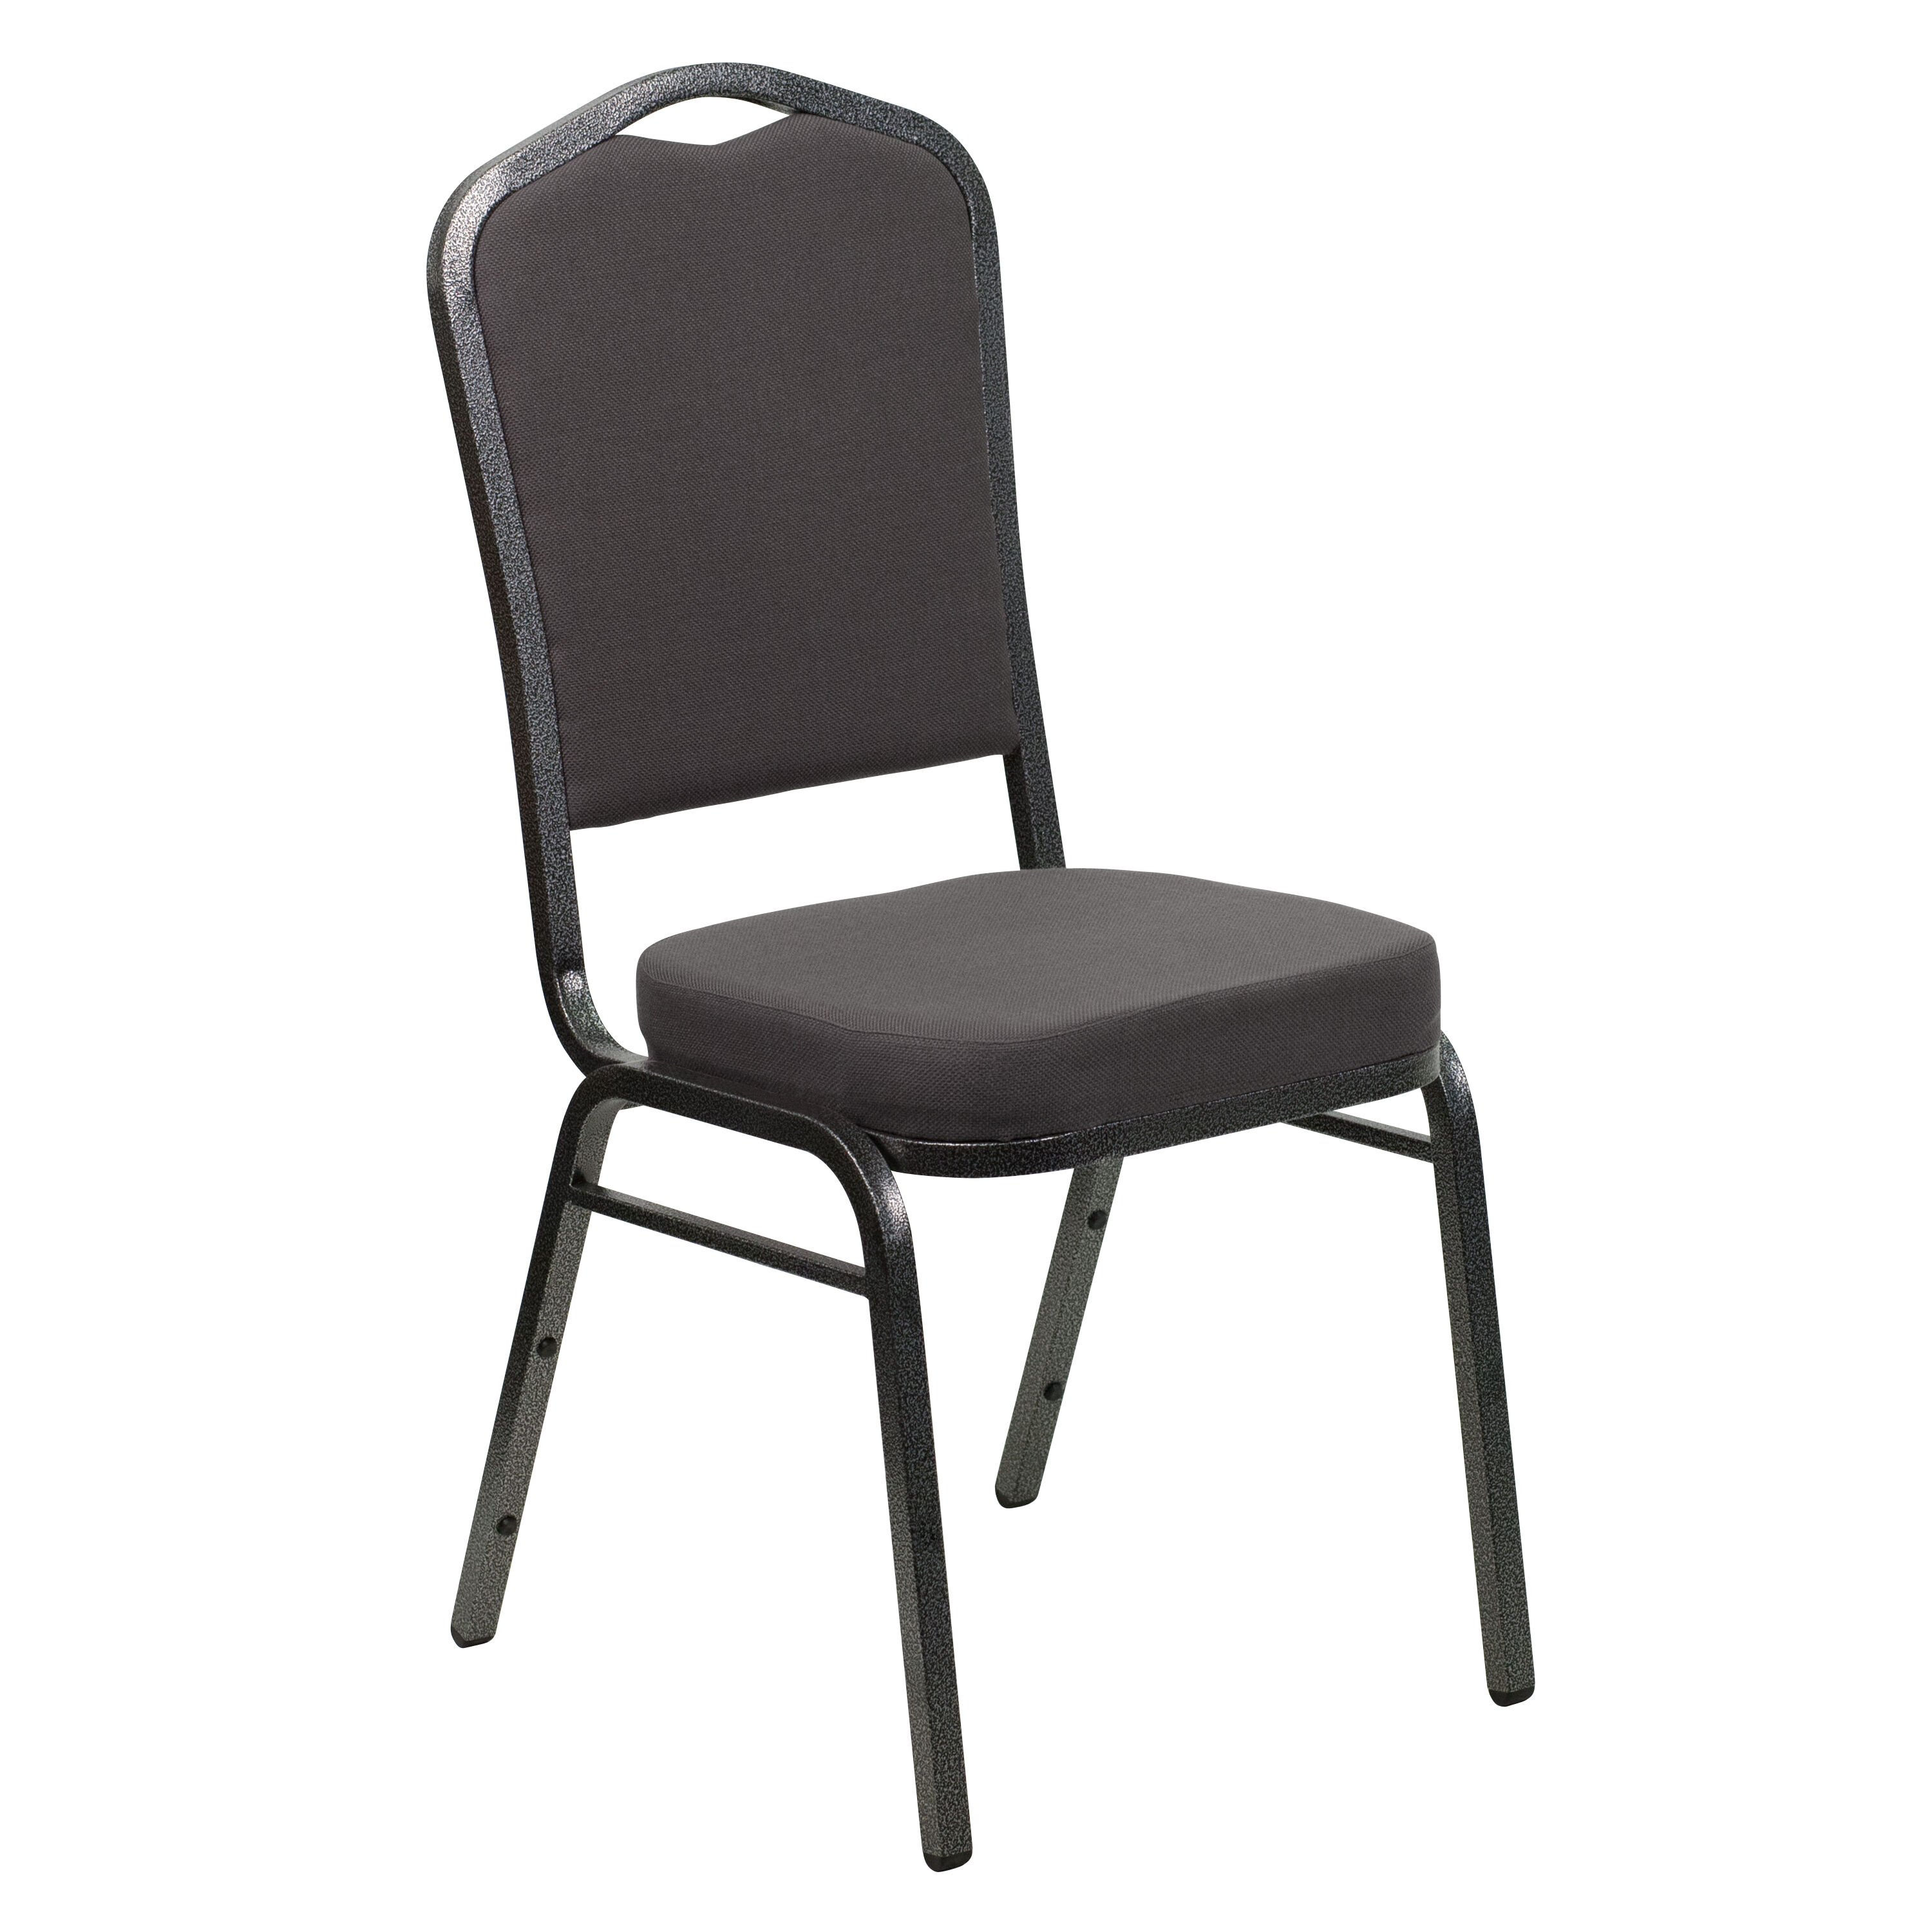 Flash Furniture HERCULES Series Crown Back Stacking Banquet Chair In Gray  Fabric   Silver Vein Frame FD C01 SILVERVEIN GY GG   StackChairs4Less.com